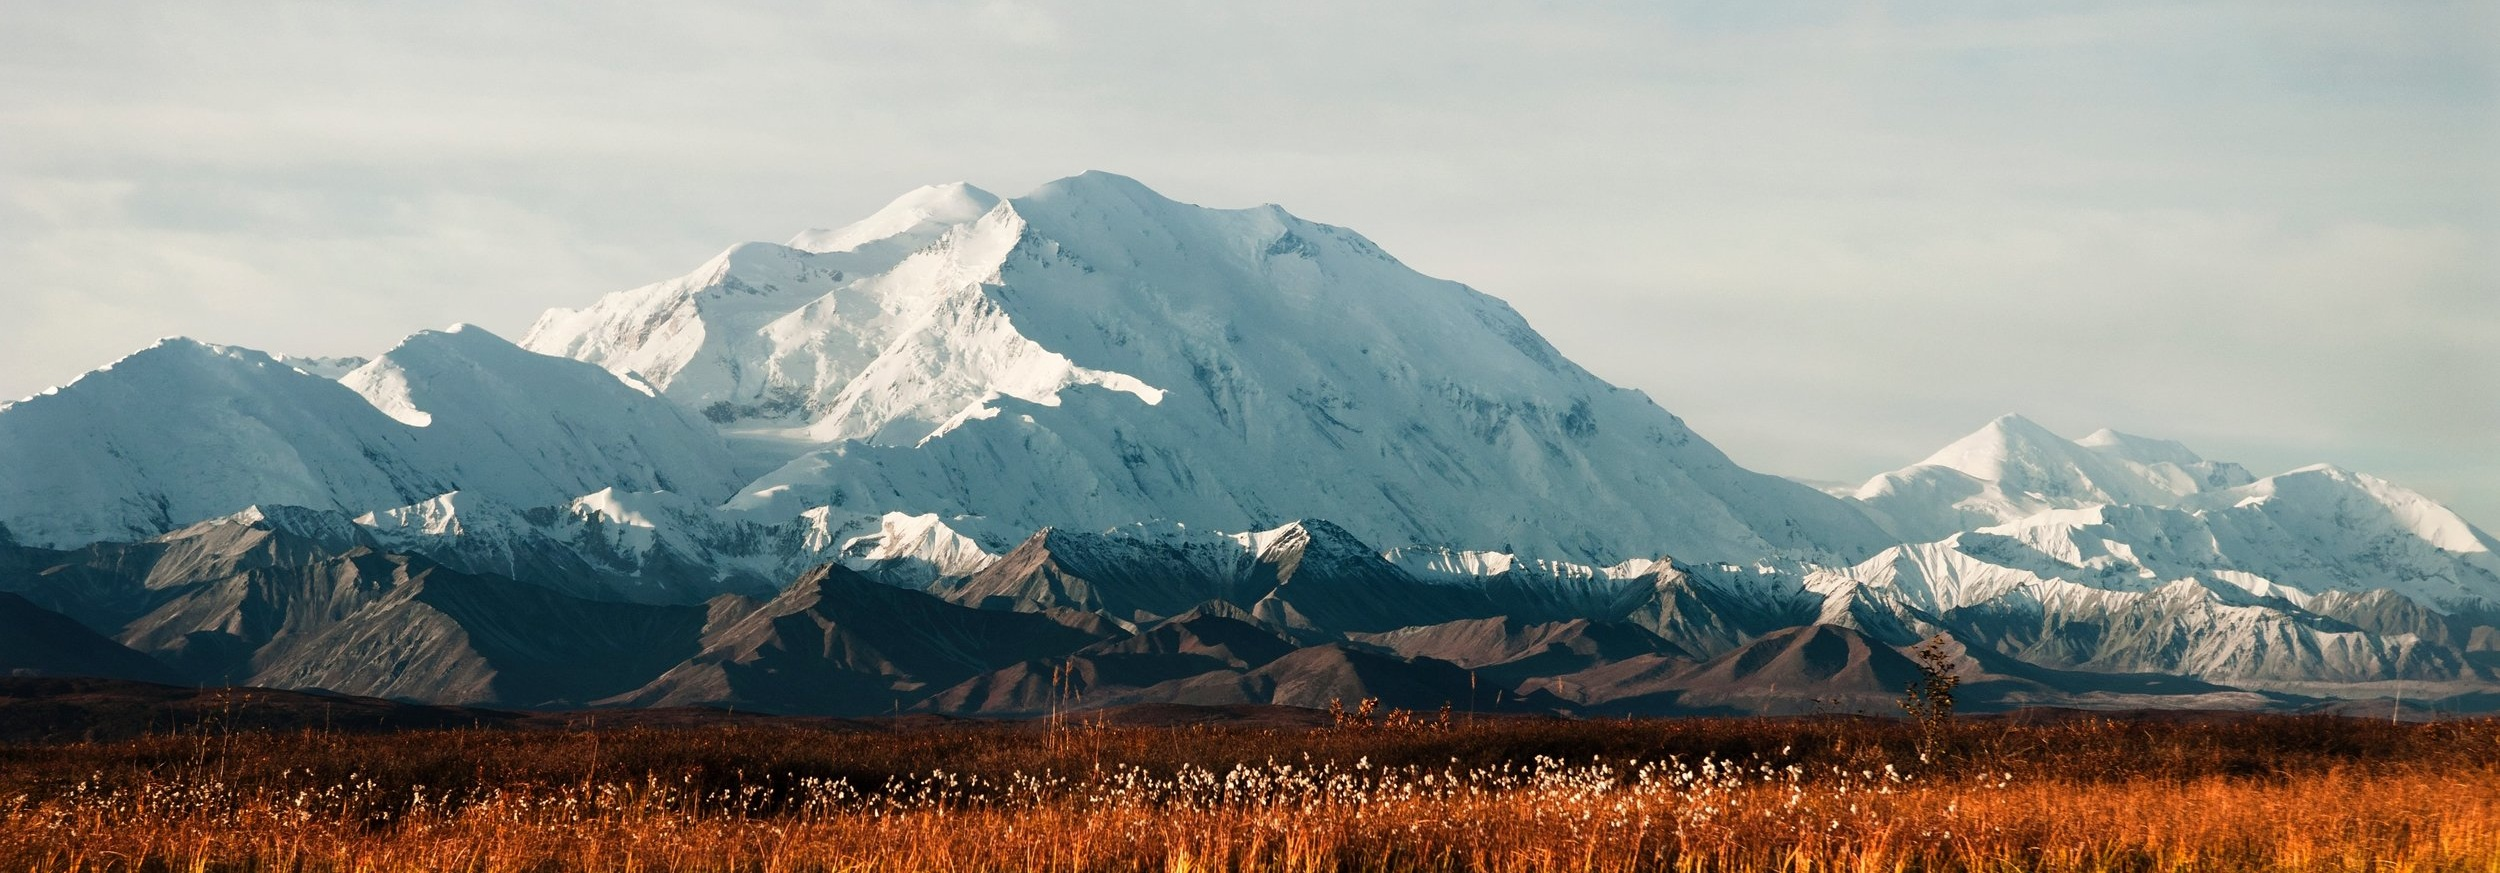 Denali+Mountain2.jpg